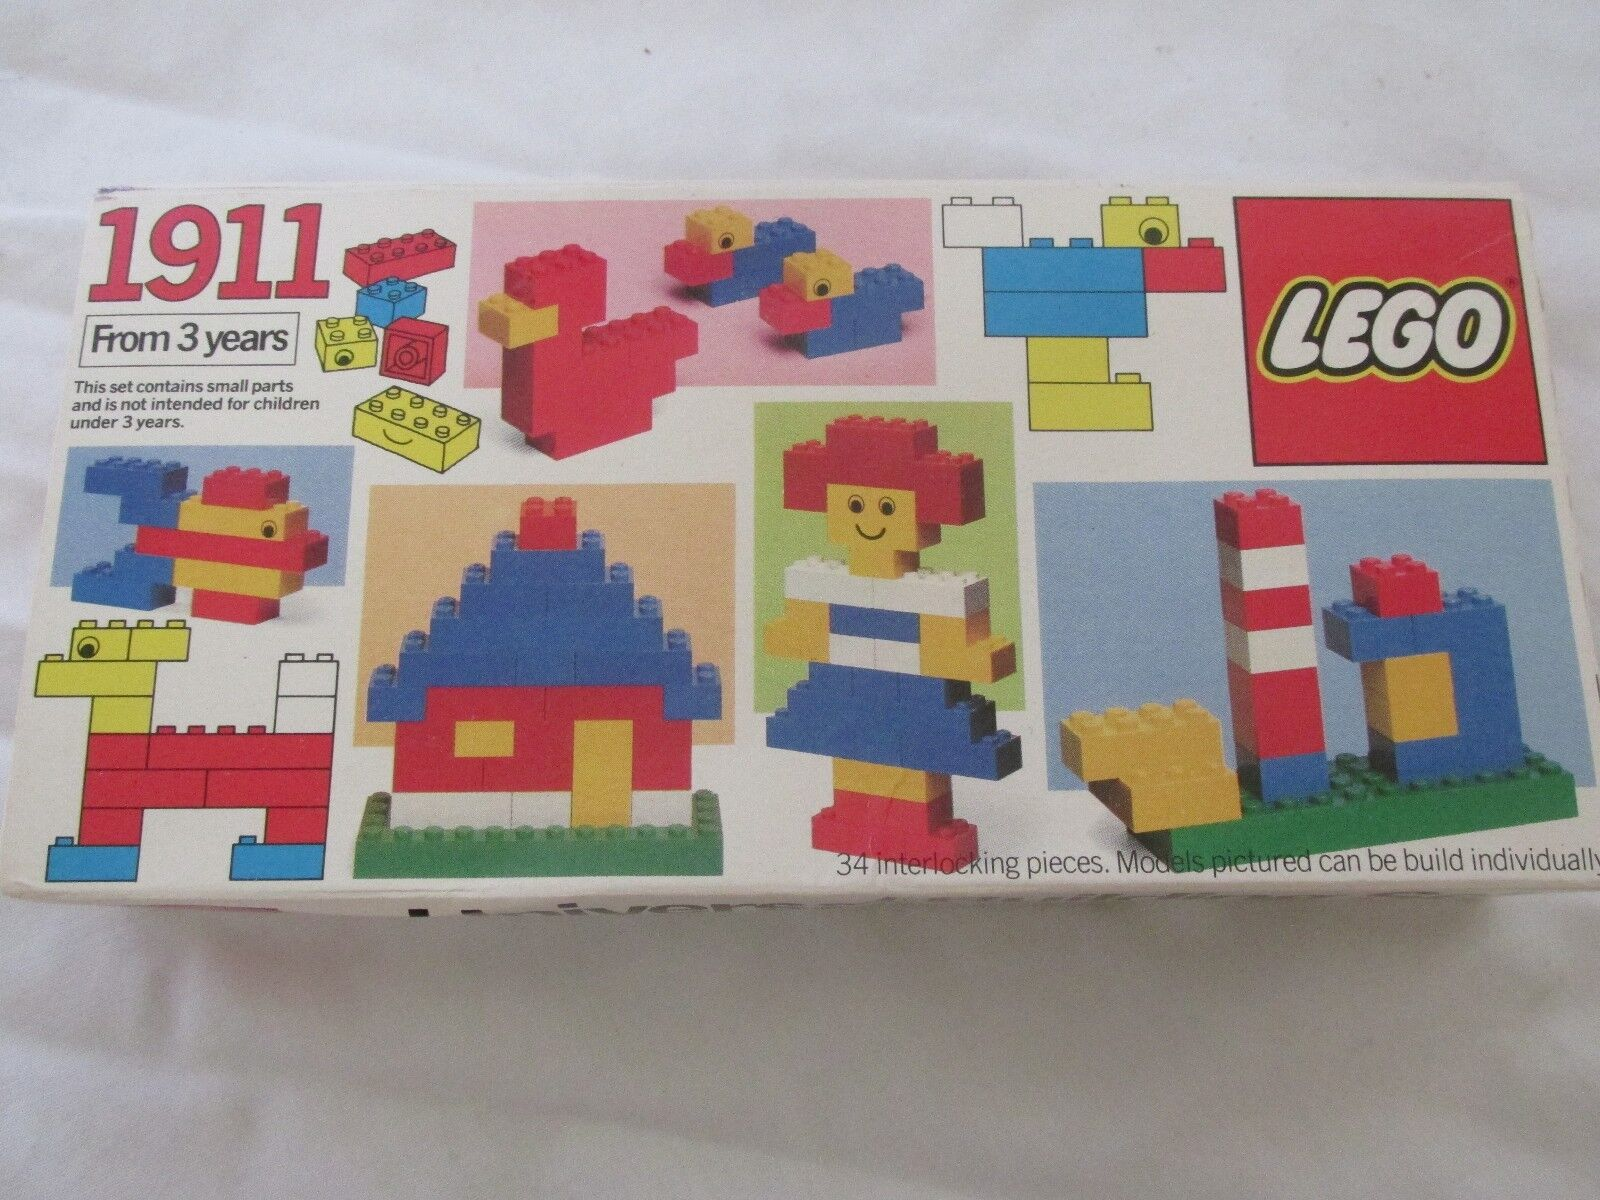 Brand New in Box Vintage 1983 Lego Universal Building Set Model No. 1911 34 Pcs.